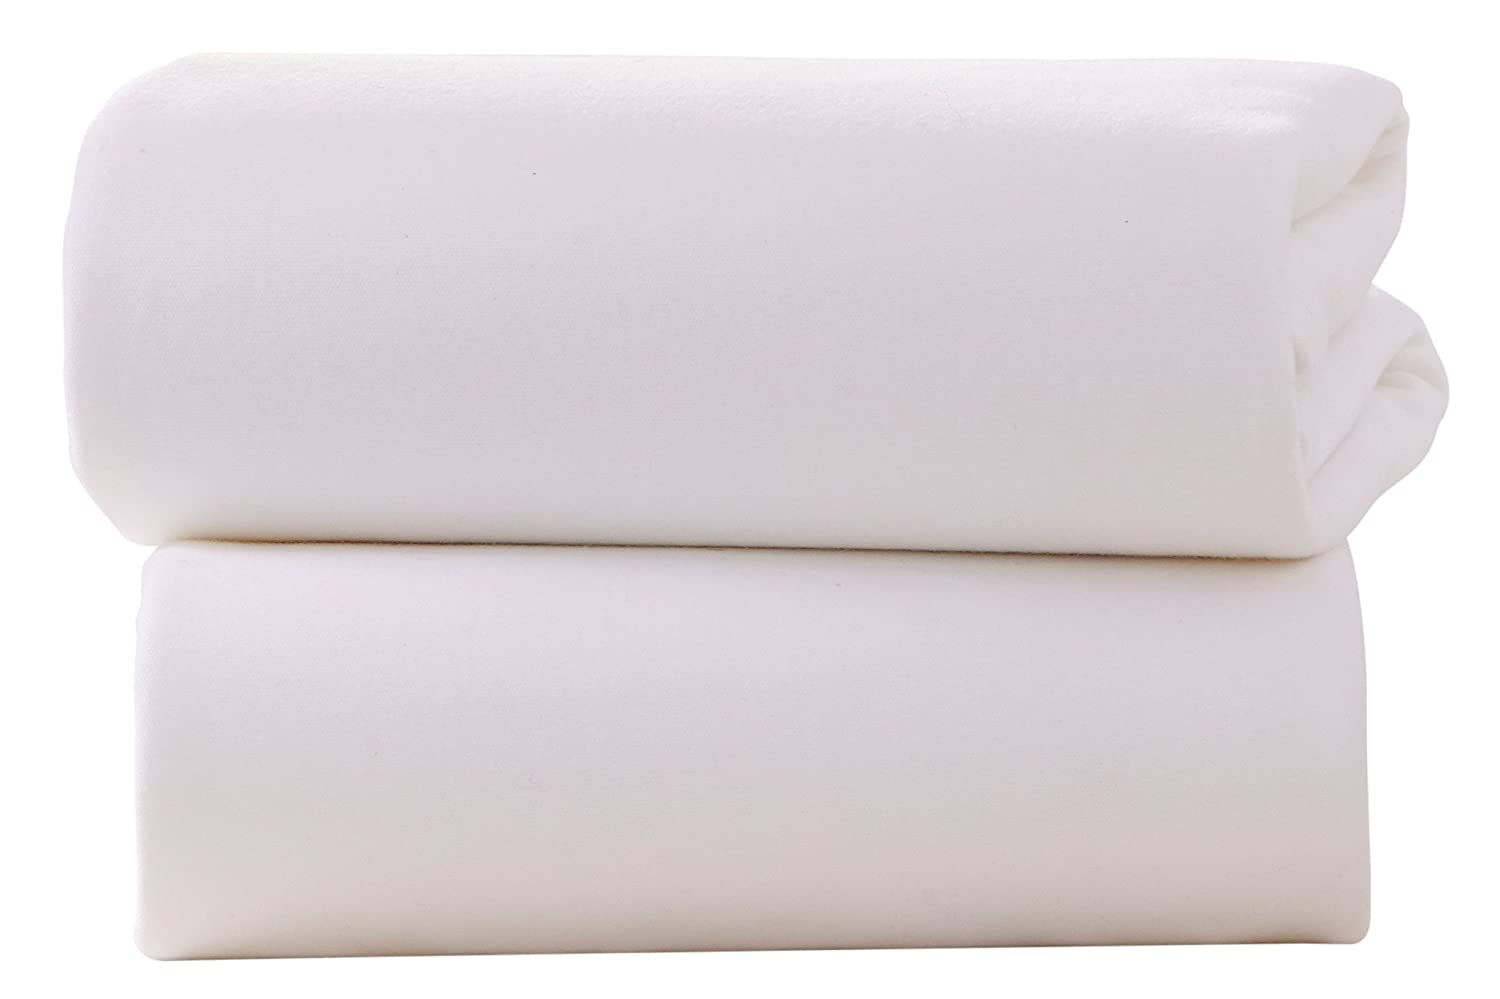 Clair de Lune Cot Bed Cotton Jersey Fitted Sheets Pack of 2, White